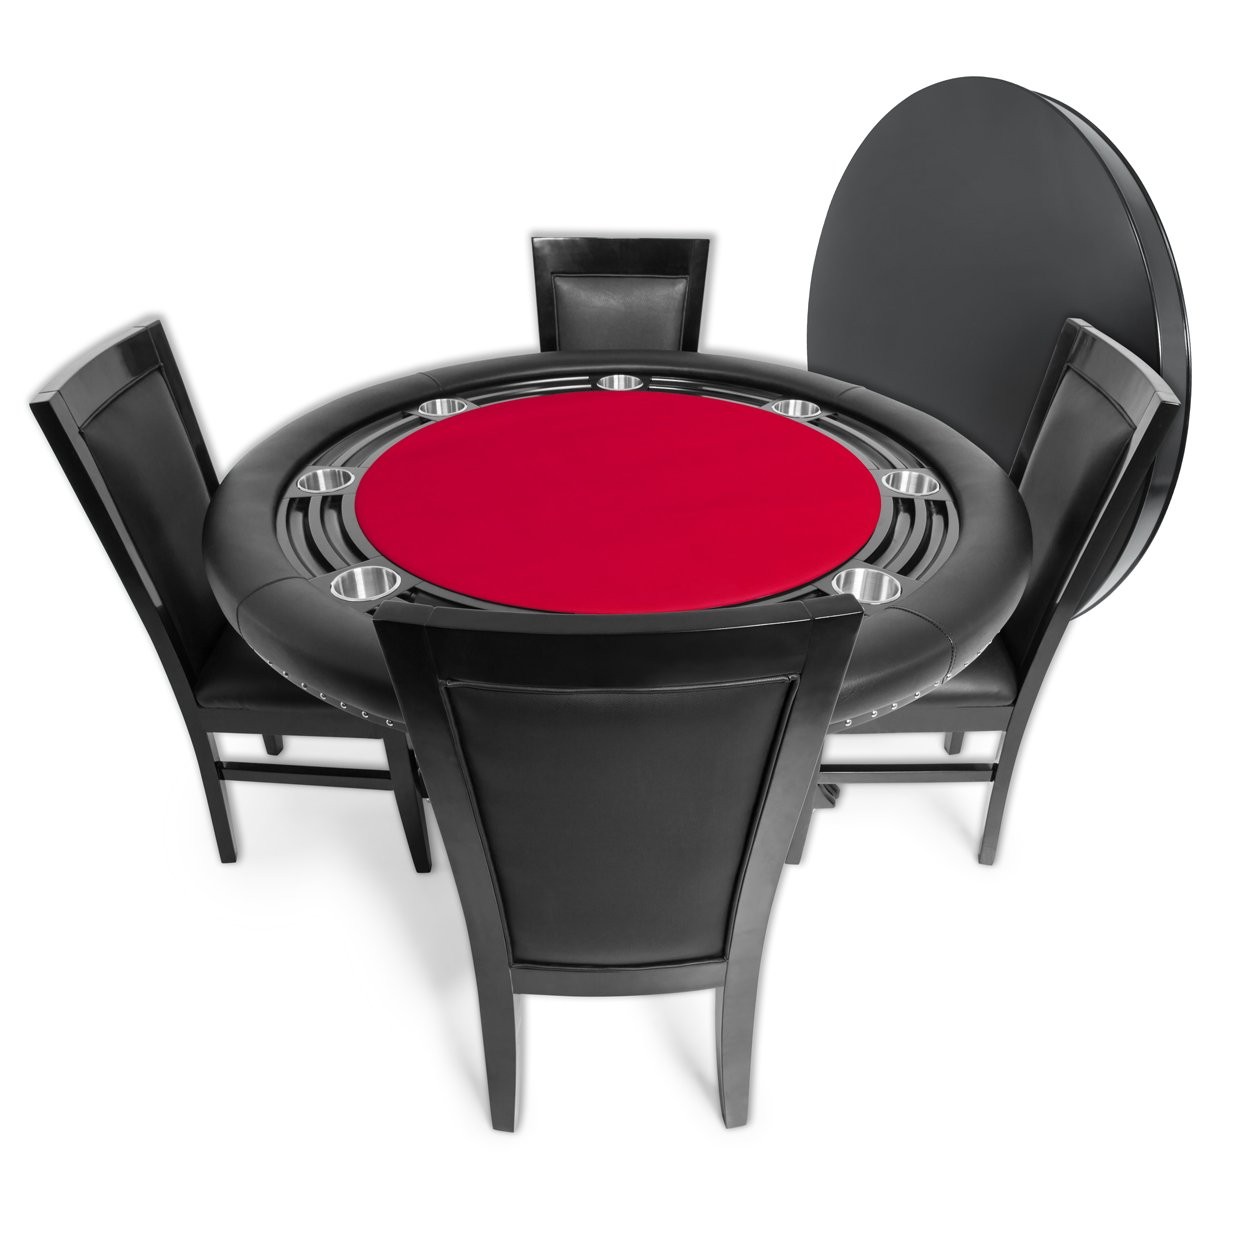 BBO Poker Nighthawk Poker Table for 8 Players with Red Felt Playing Surface, 55-Inch Round, Includes Matching Dining Top with 4 Dining Chairs